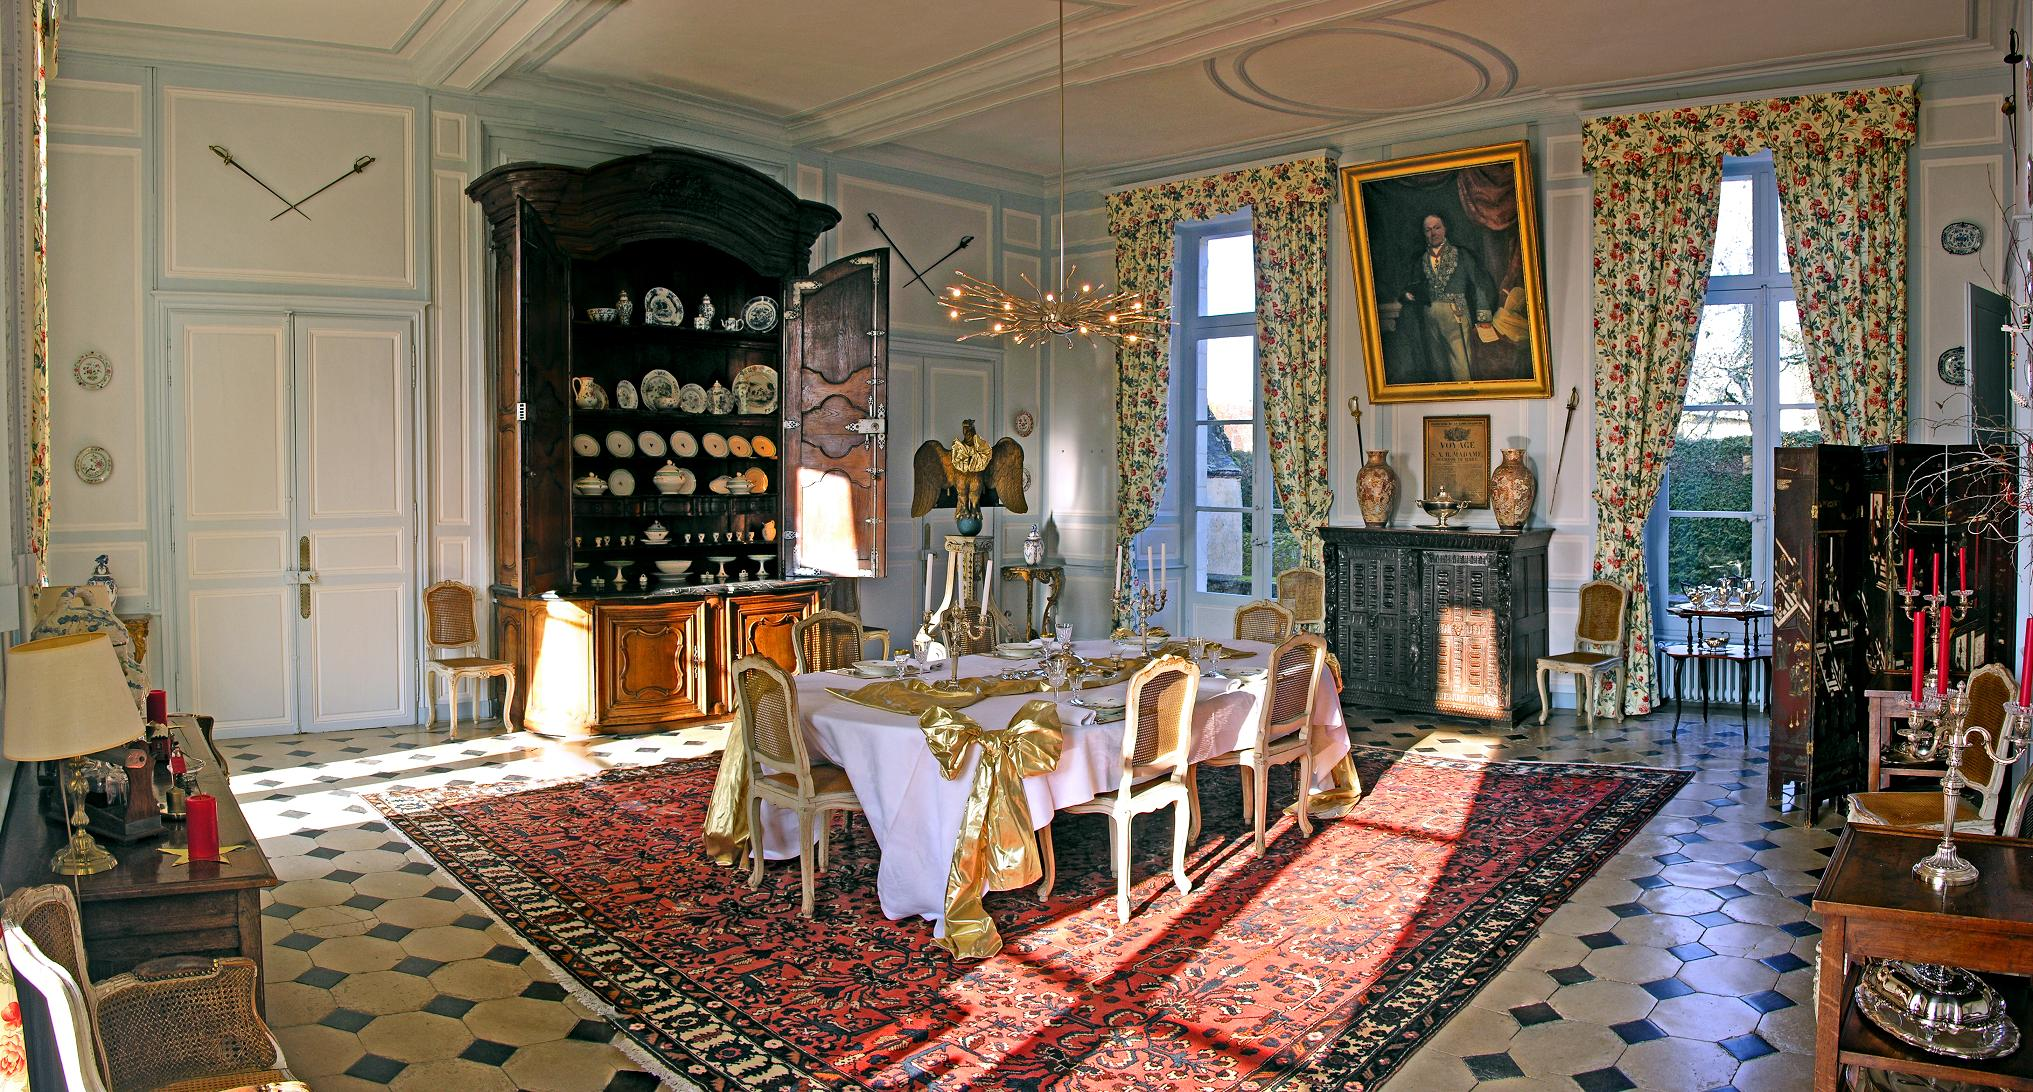 dining-room-chateau-barre-hotel-vanssay-loire-france